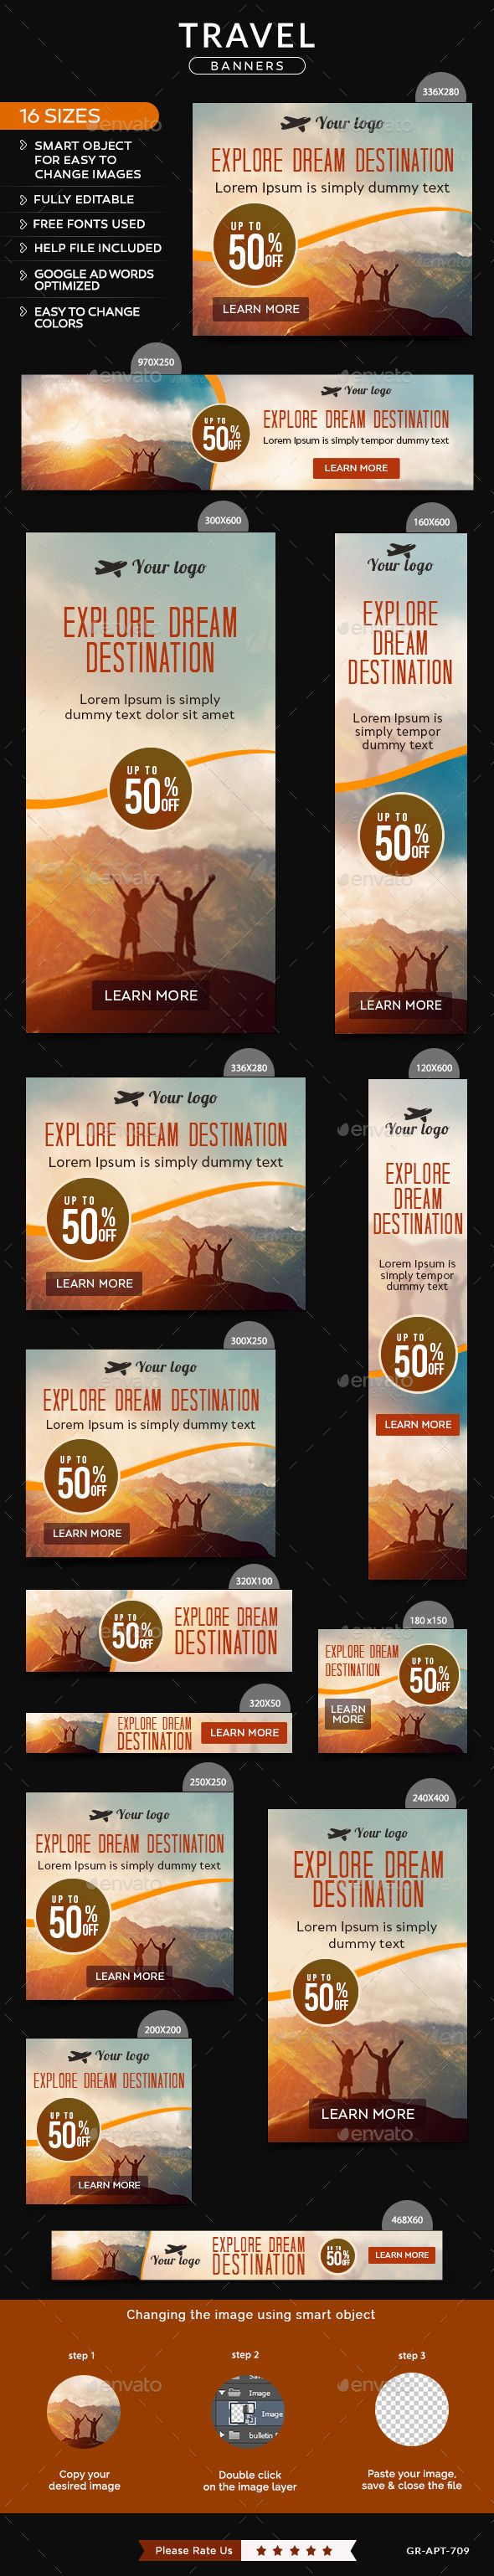 Travel Banners #design Download: http://graphicriver.net/item/travel-banners/11932690?ref=ksioks